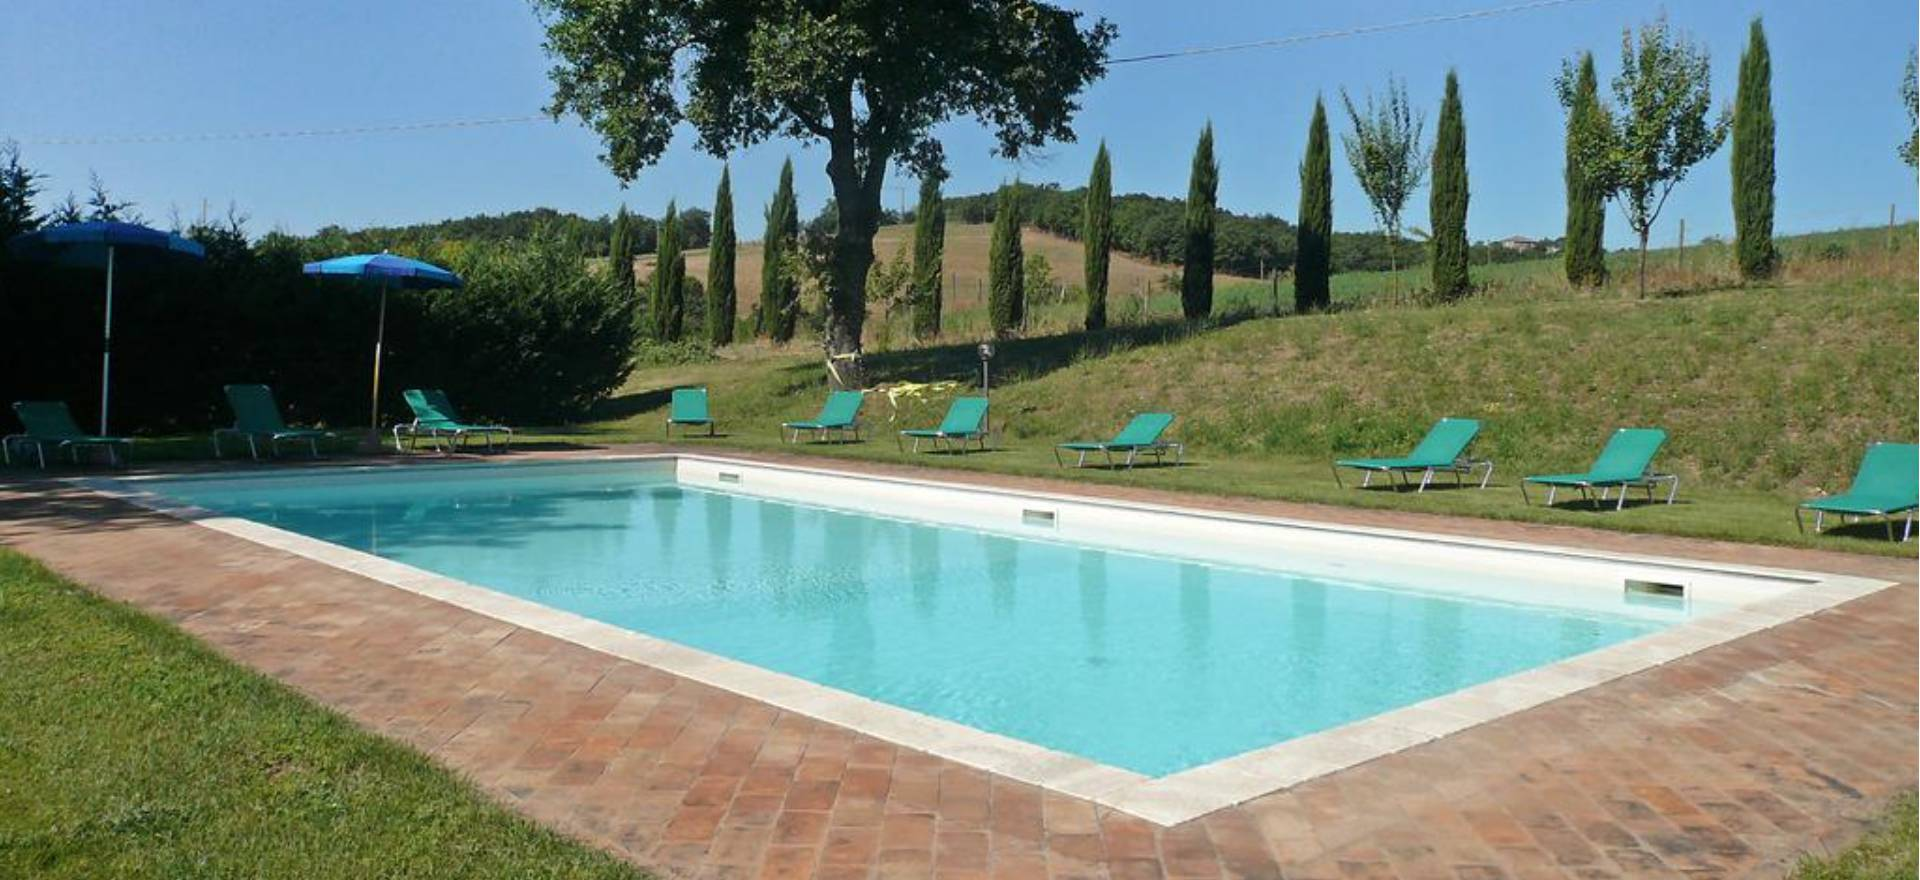 Agriturismo Toscana Due casolari in Toscana con piscina privata